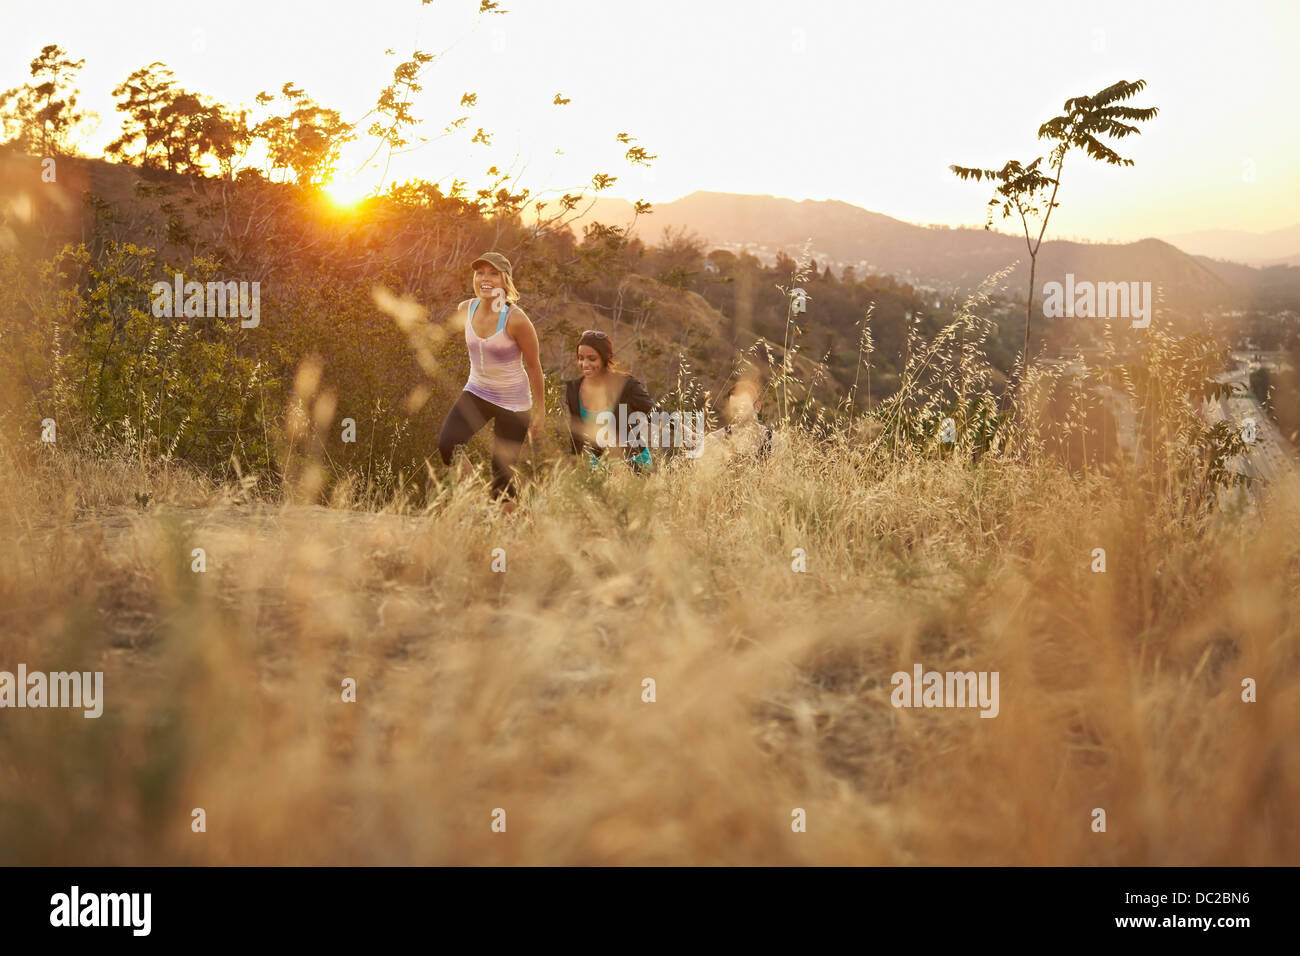 People walking up hillside path - Stock Image